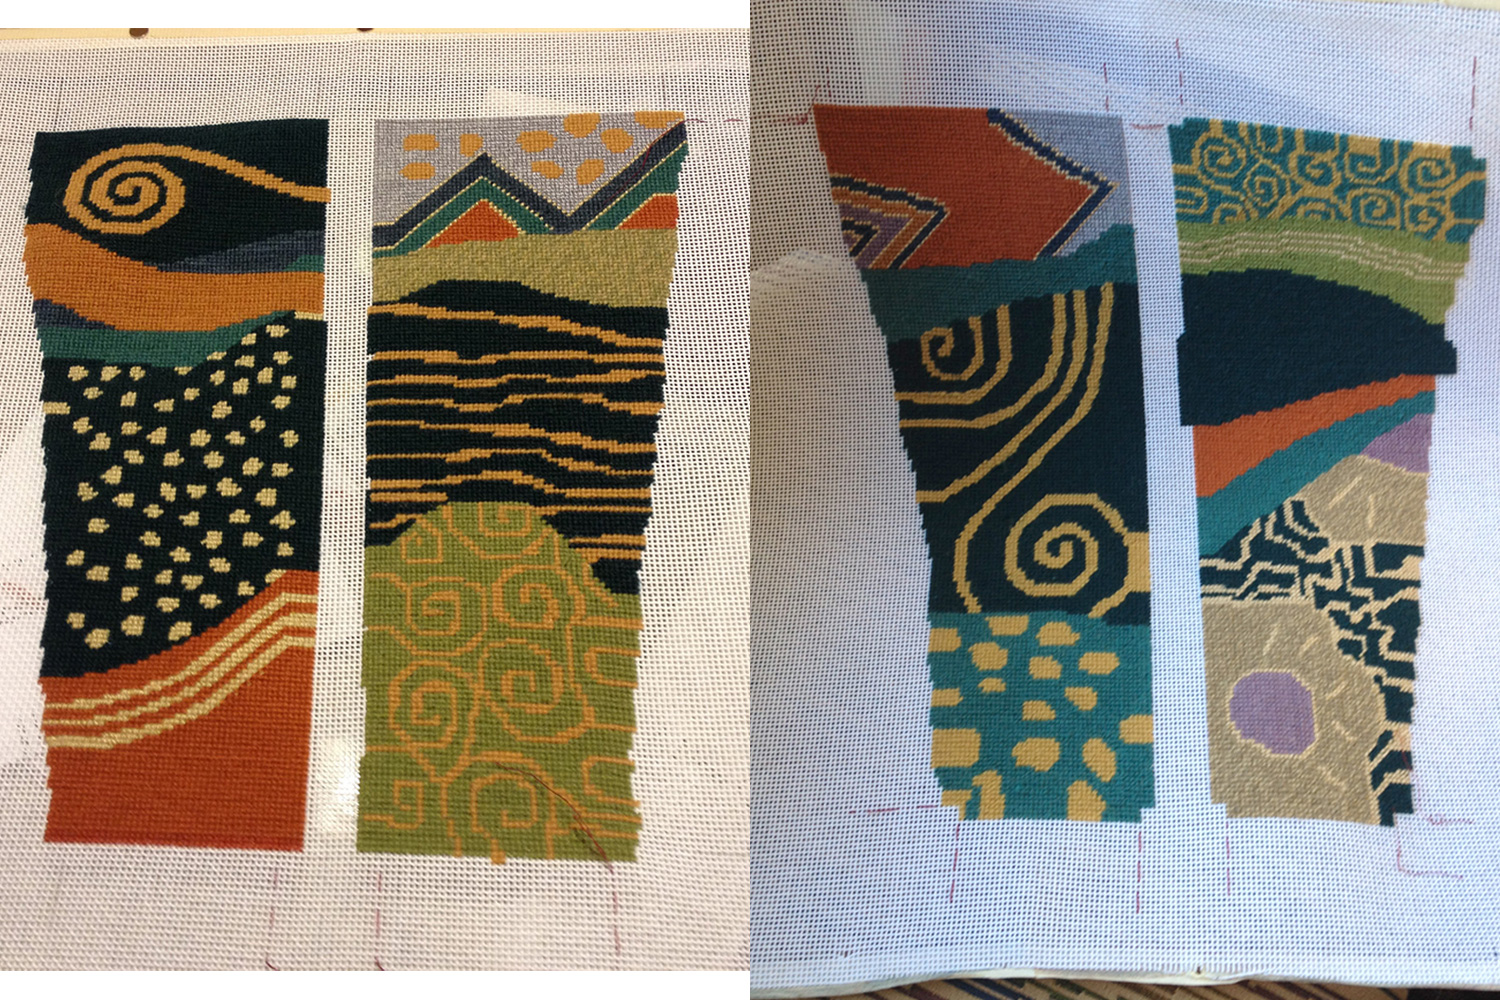 Needlepoint complete, with design widened all around to allow for seams